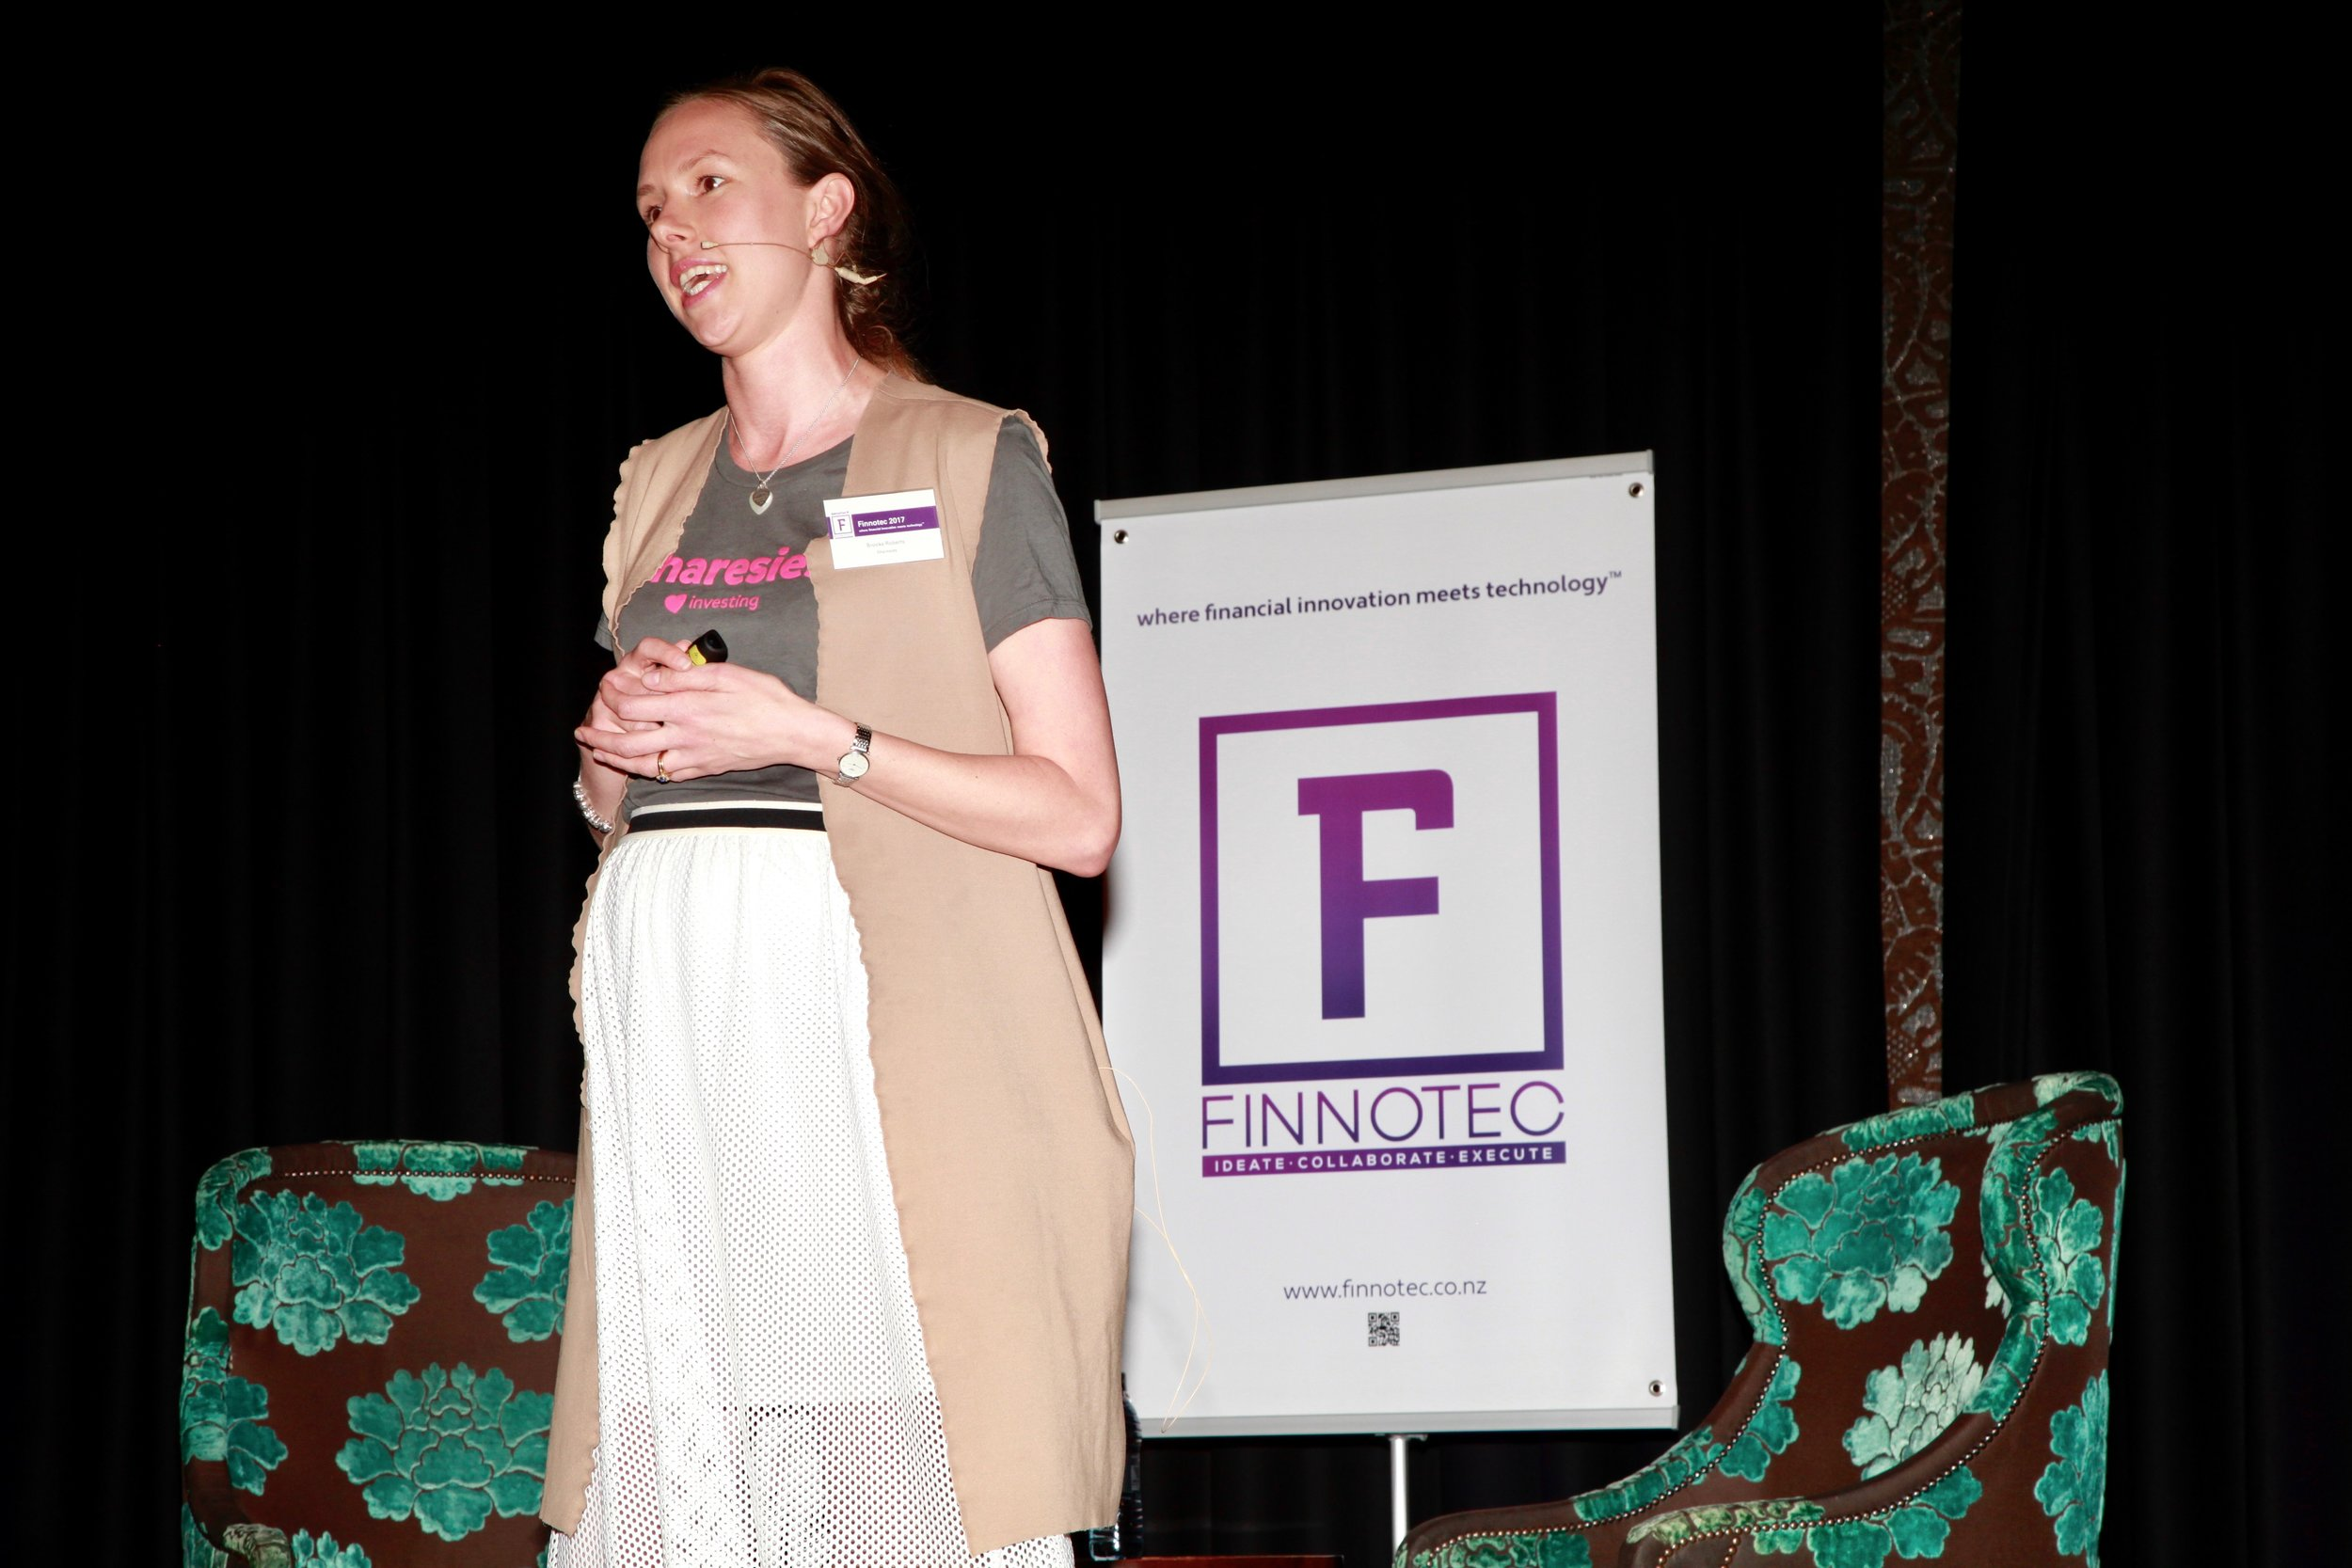 Brooke Anderson, Co-founder, Sharesies